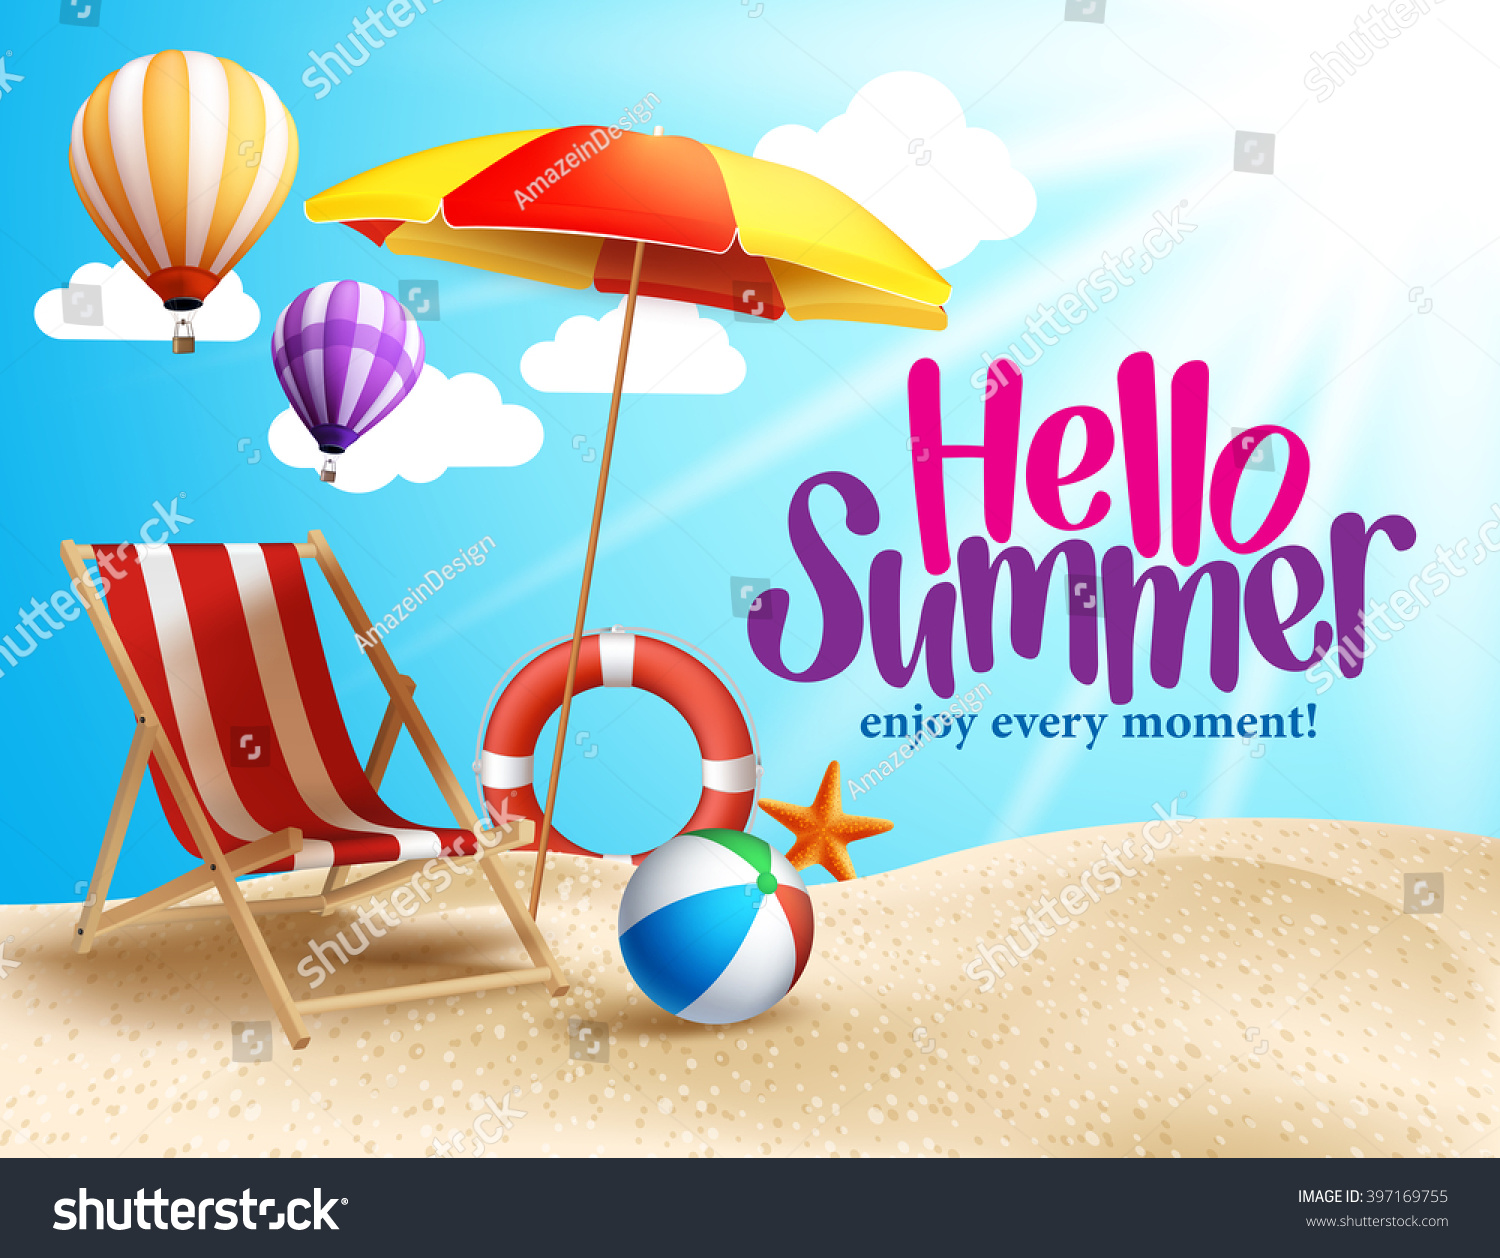 Summer Beach Vector Design In The Seashore With Umbrella And Chair Background